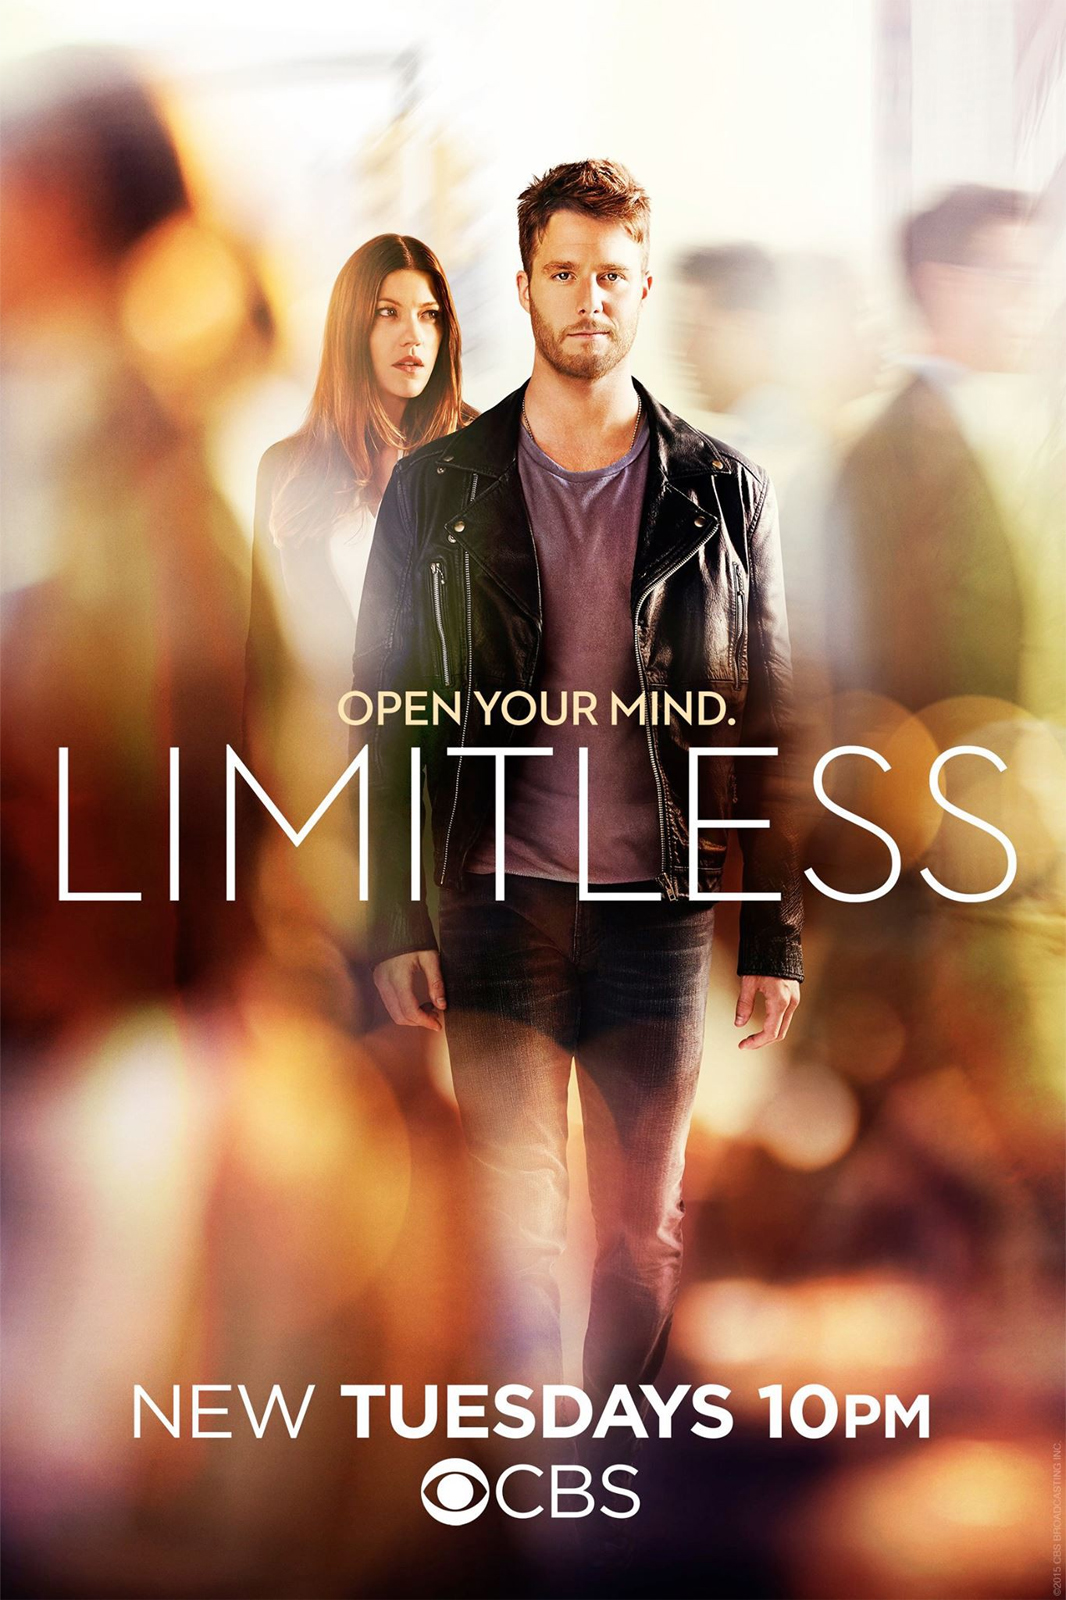 Limitless saison 1 épisode 1 à 3 [FRENCH] [HDTV]